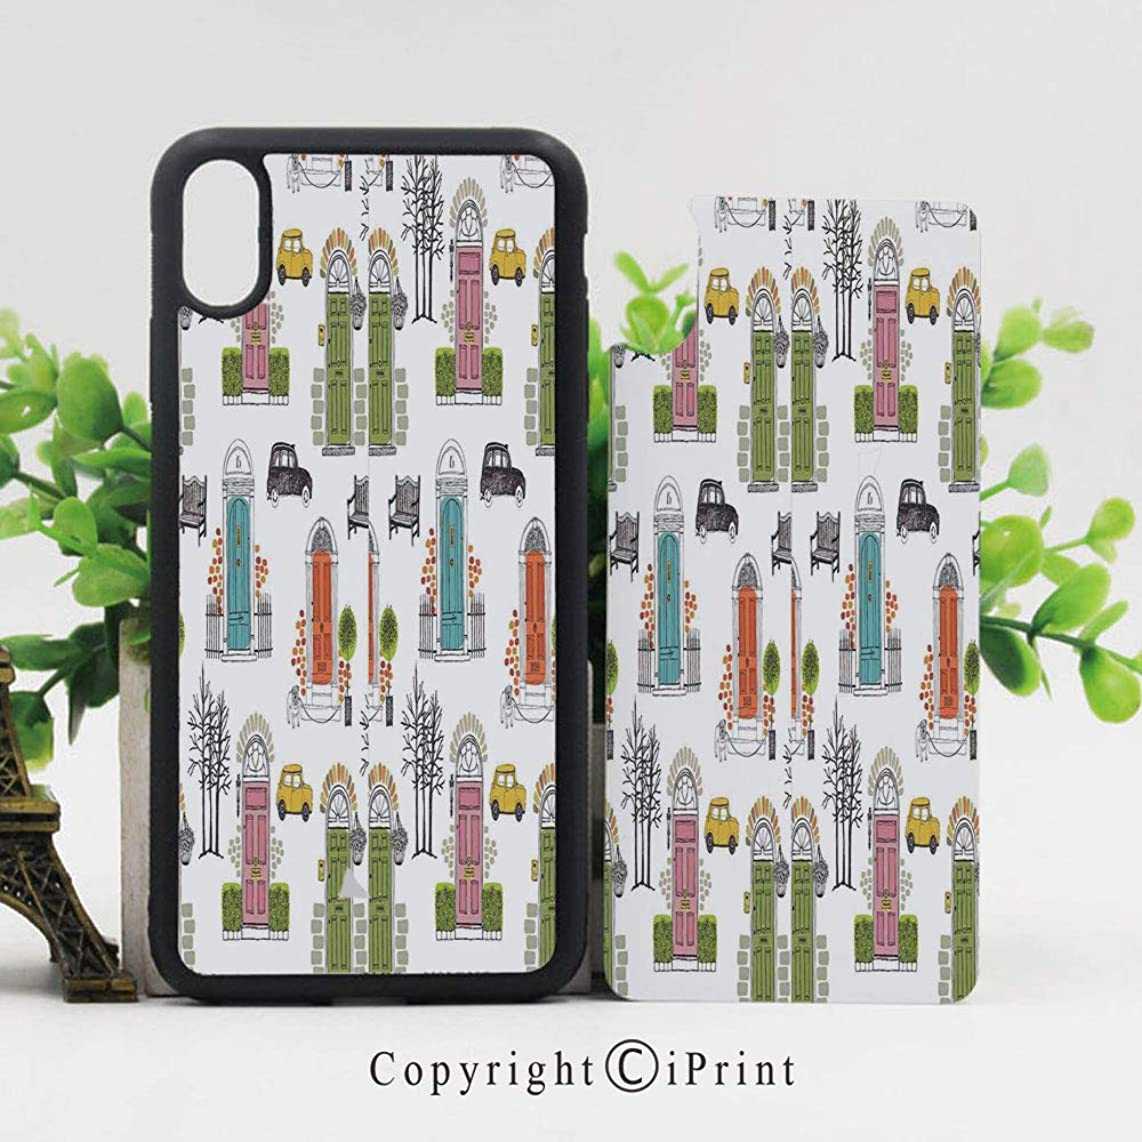 iPhone X Case,Vintage House Doors Art Pattern City Collage Entrance Dog Car Gate Home Bench iPhone X Shockproof Protective Case TPU Bumper Compatible Apple iPhone X 5.8